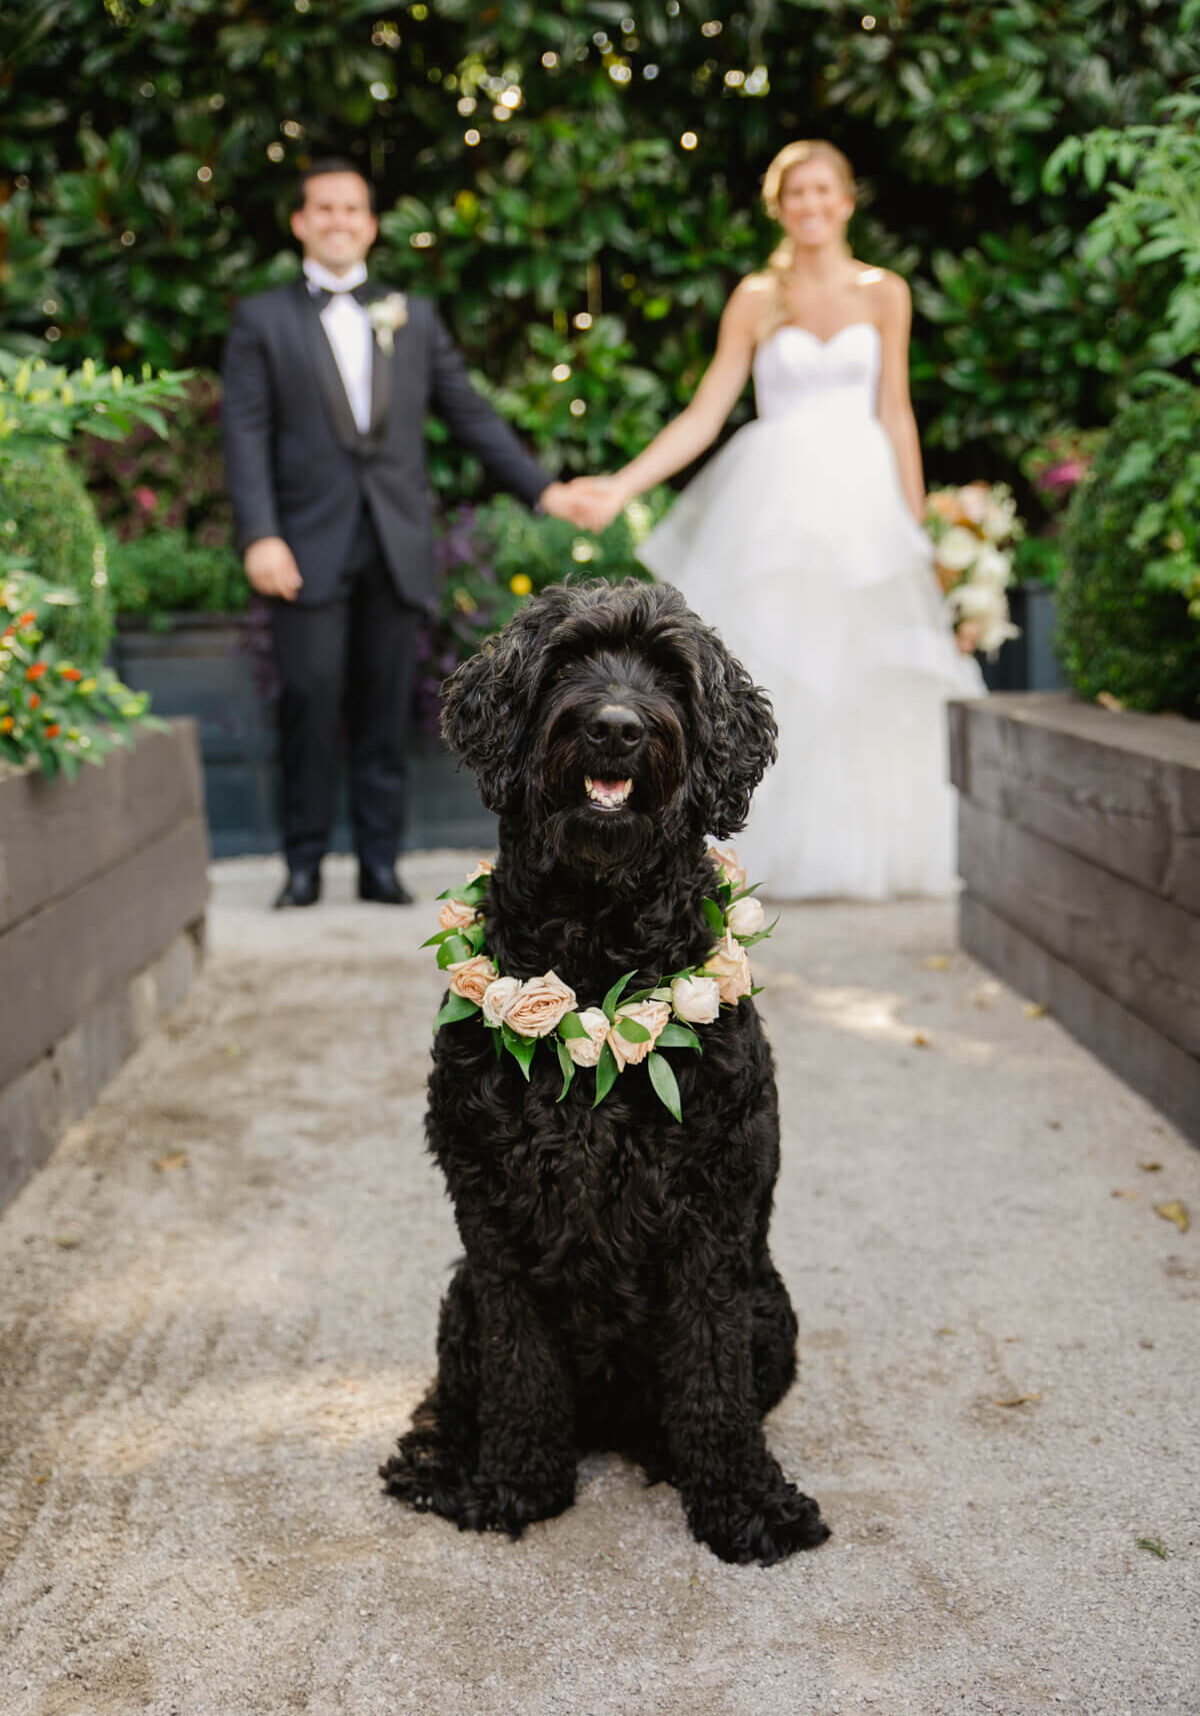 Best Dog and good boy in their humans Wedding